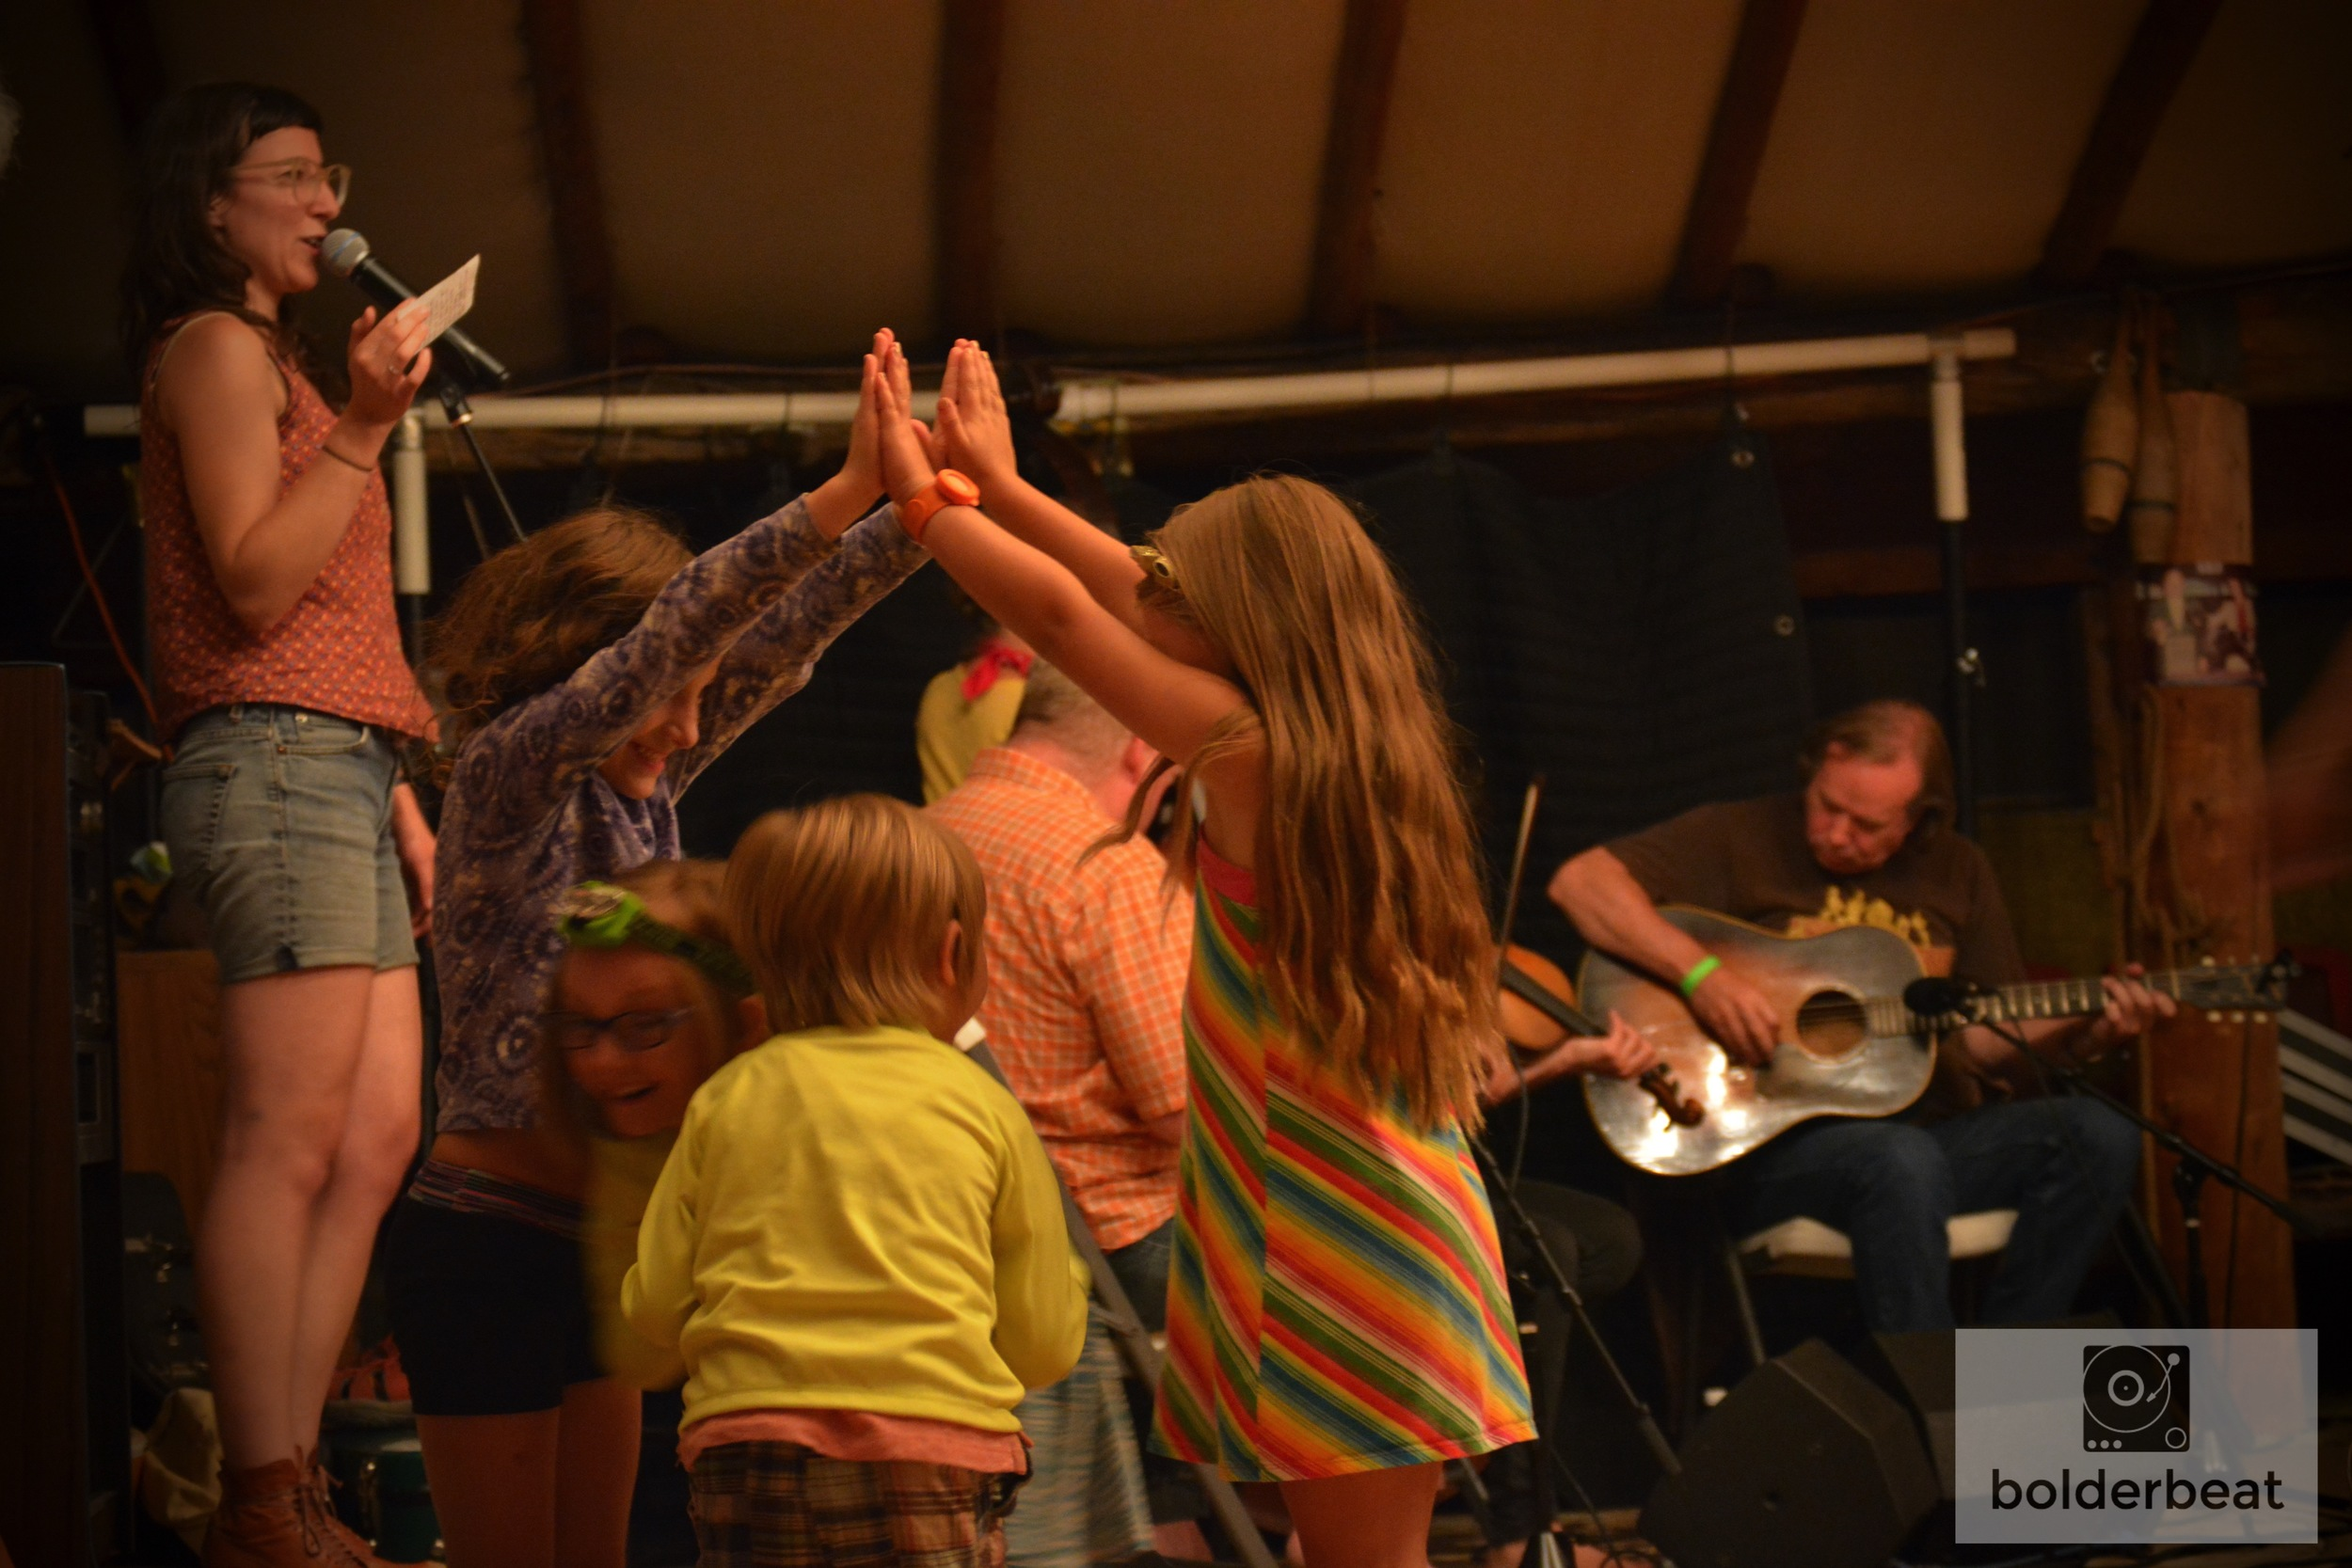 An afternoon barn dance was held at CROMA festival especially for families. Dances that are less complex were taught so young kids could follow the dance and have fun.